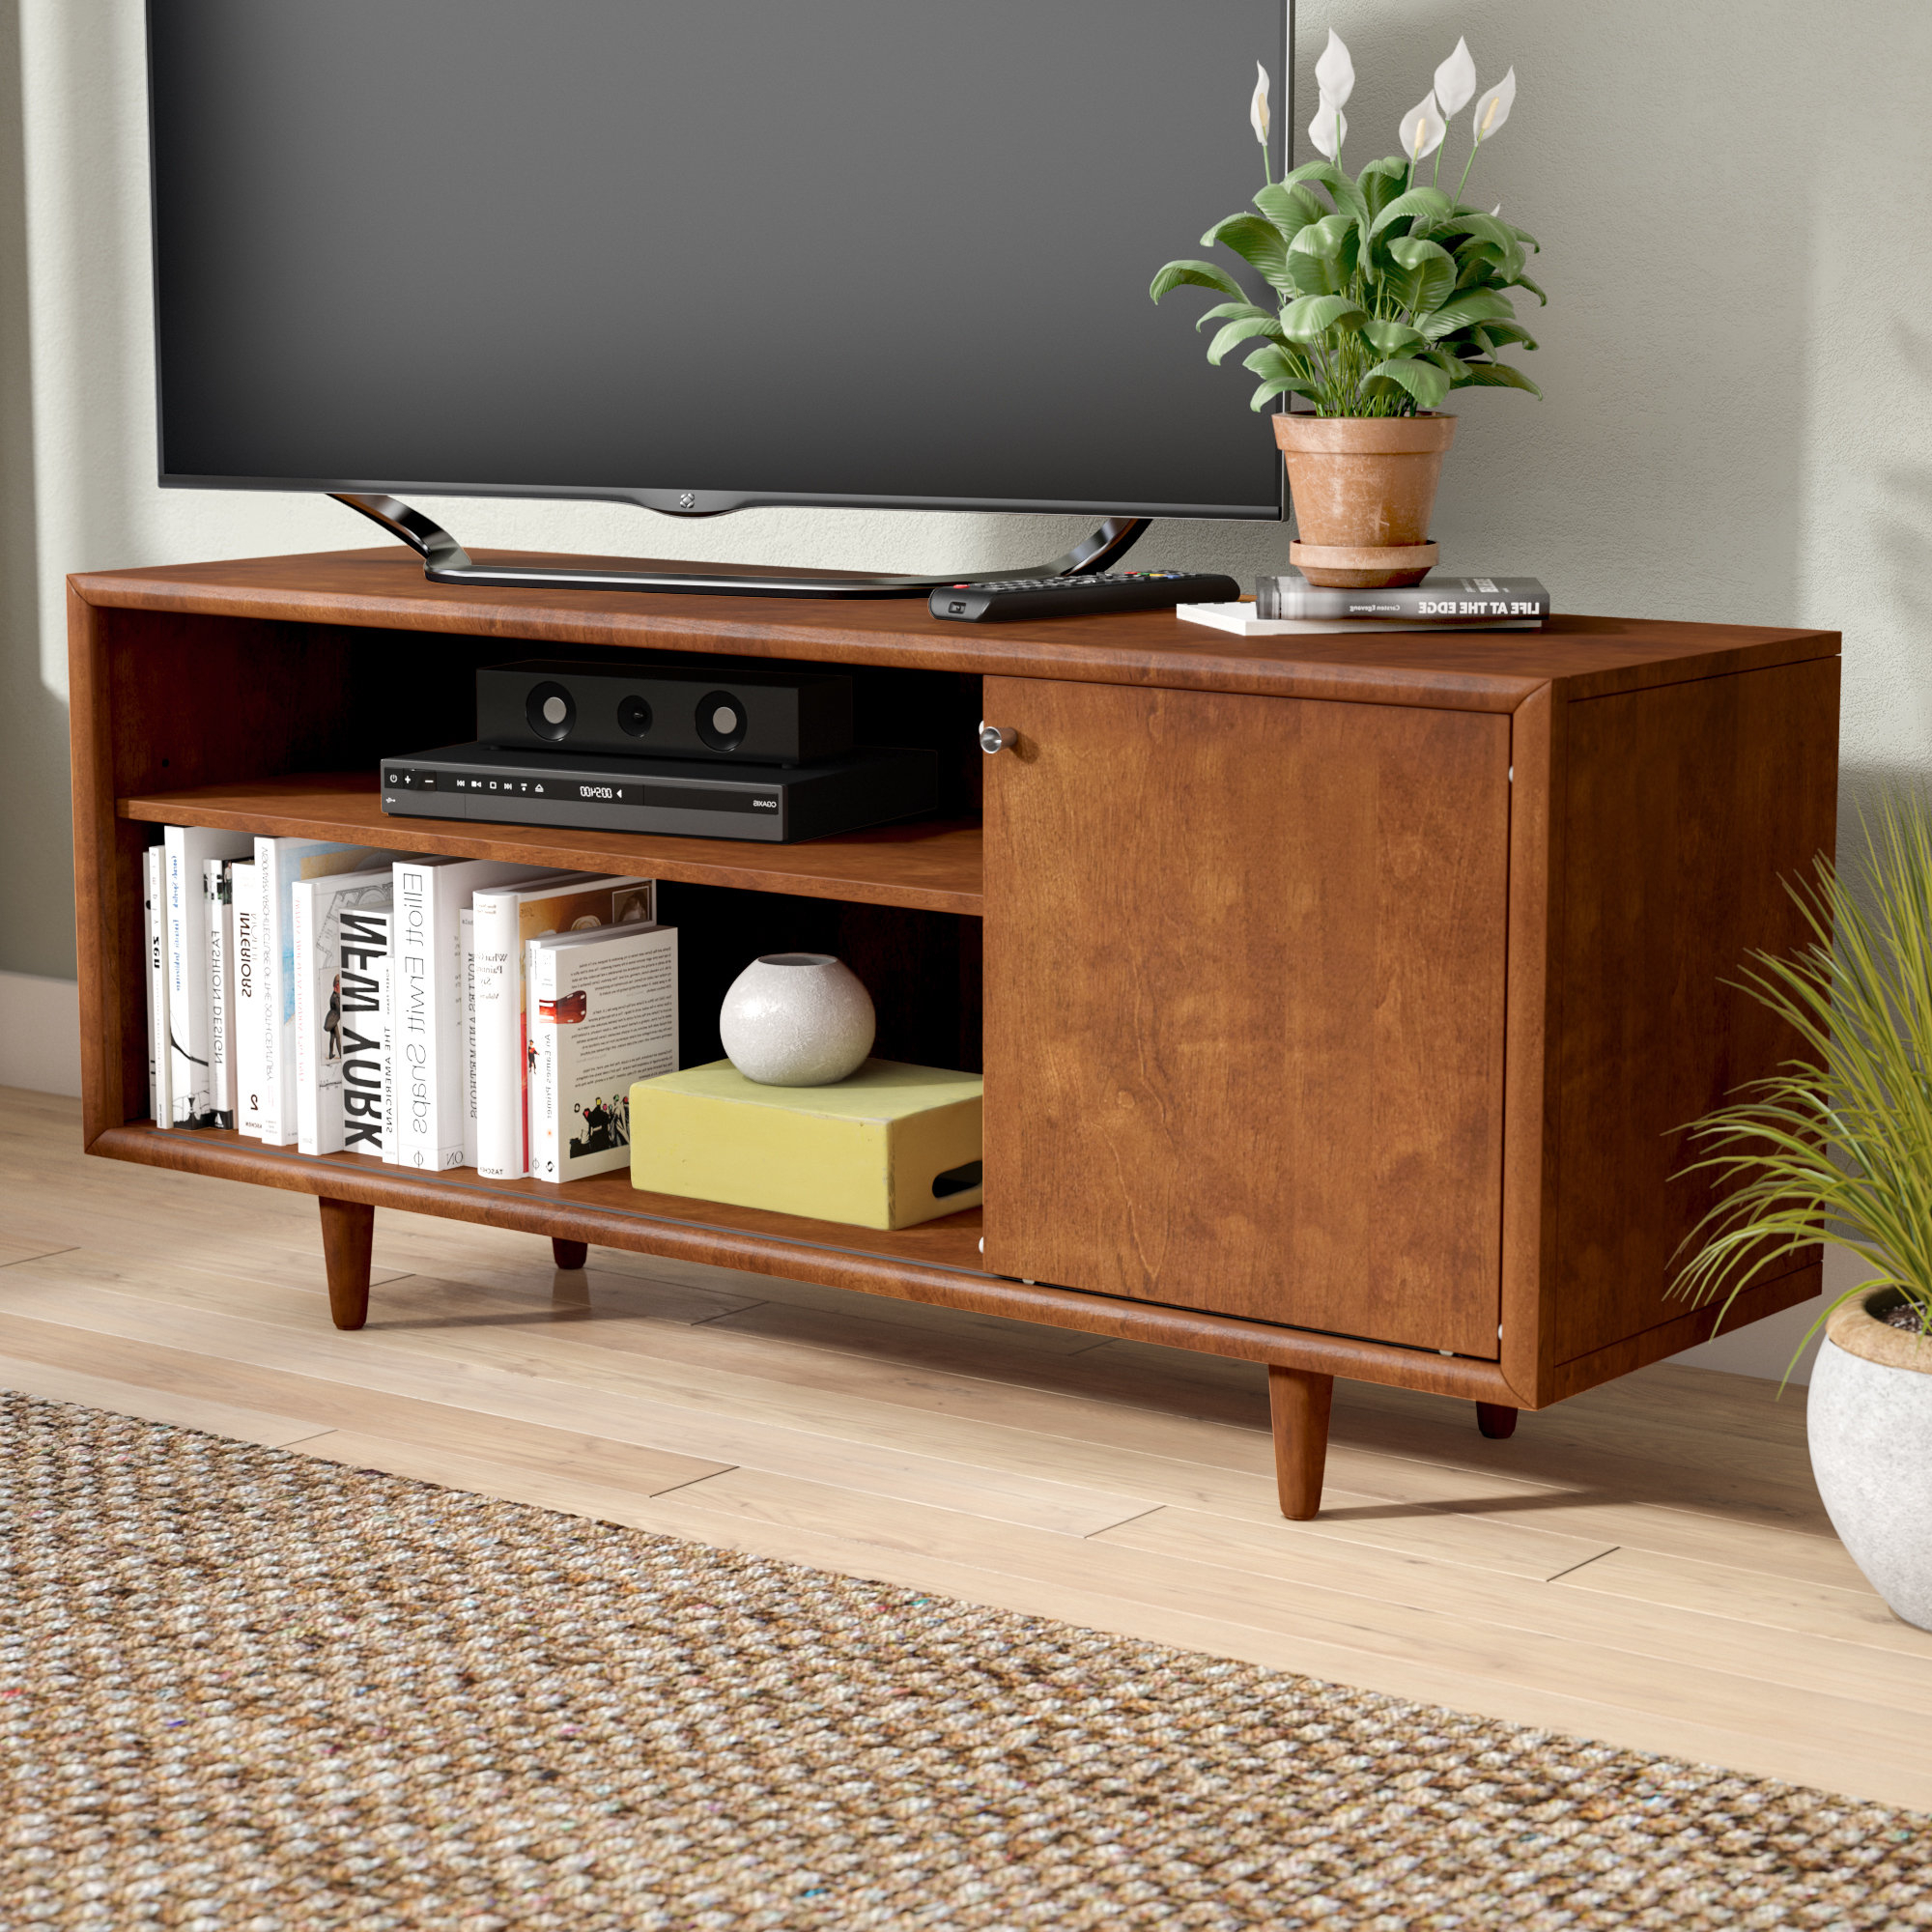 Tv Stand For 75 Inch Tv | Wayfair With Regard To Laurent 50 Inch Tv Stands (View 14 of 20)